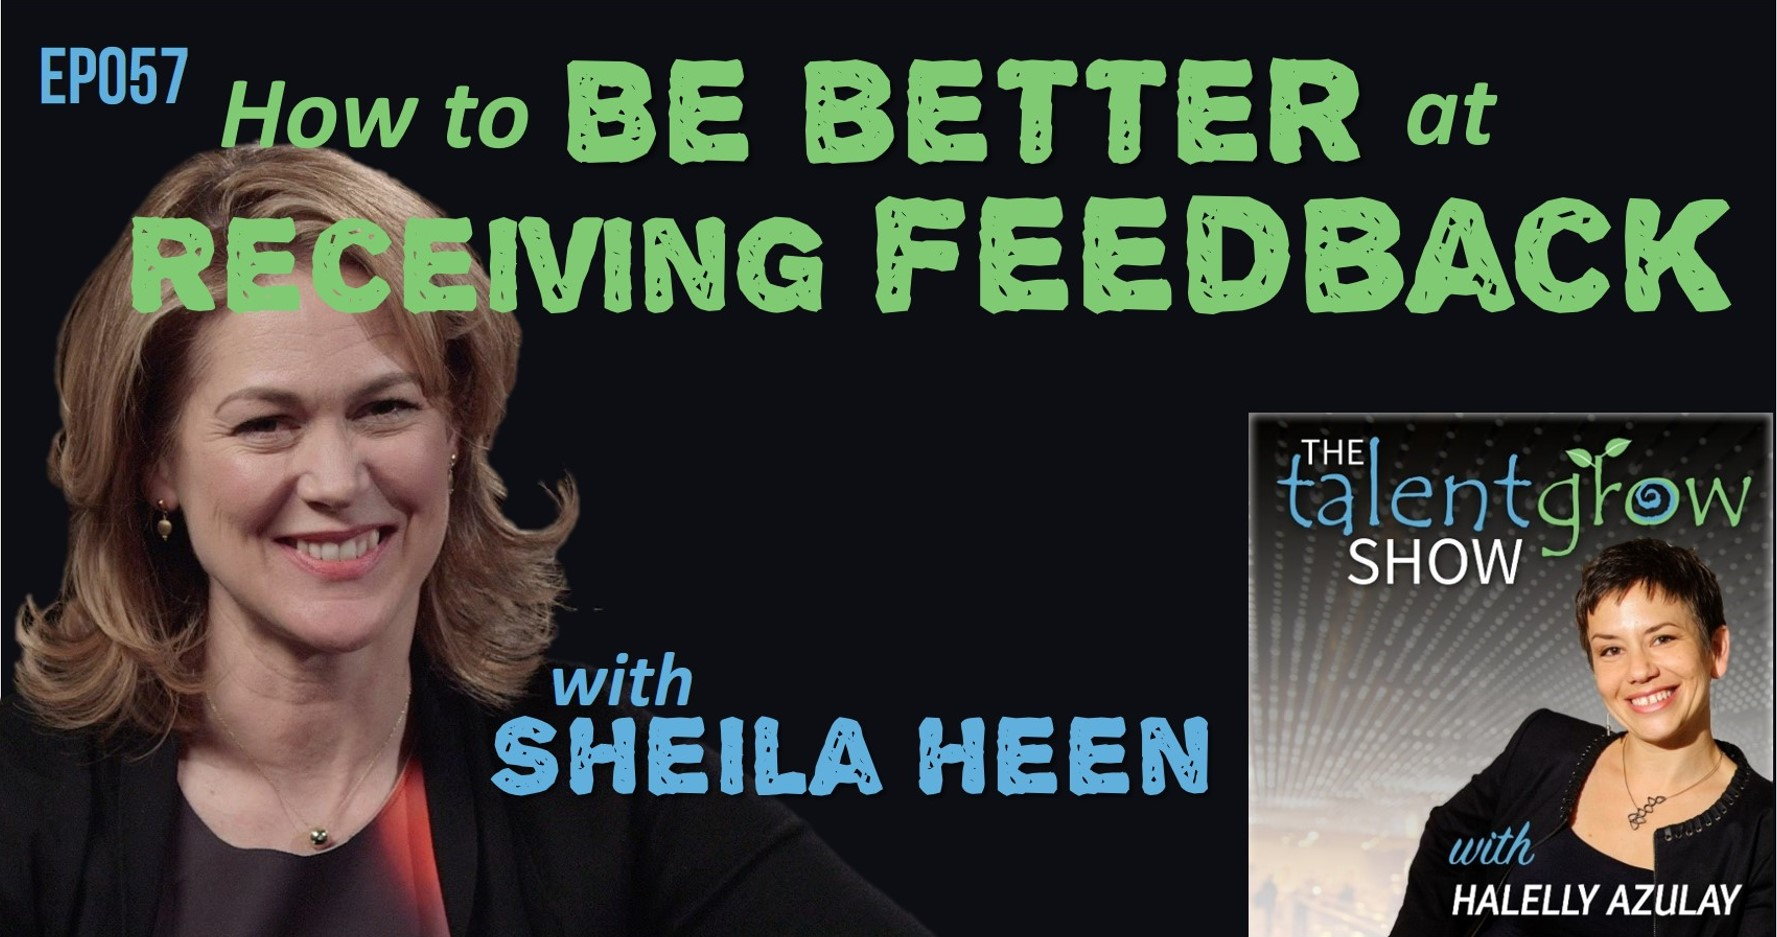 ep057 how to be better at receiving feedback with Sheila Heen on the TalentGrow Show podcast with Halelly Azulay